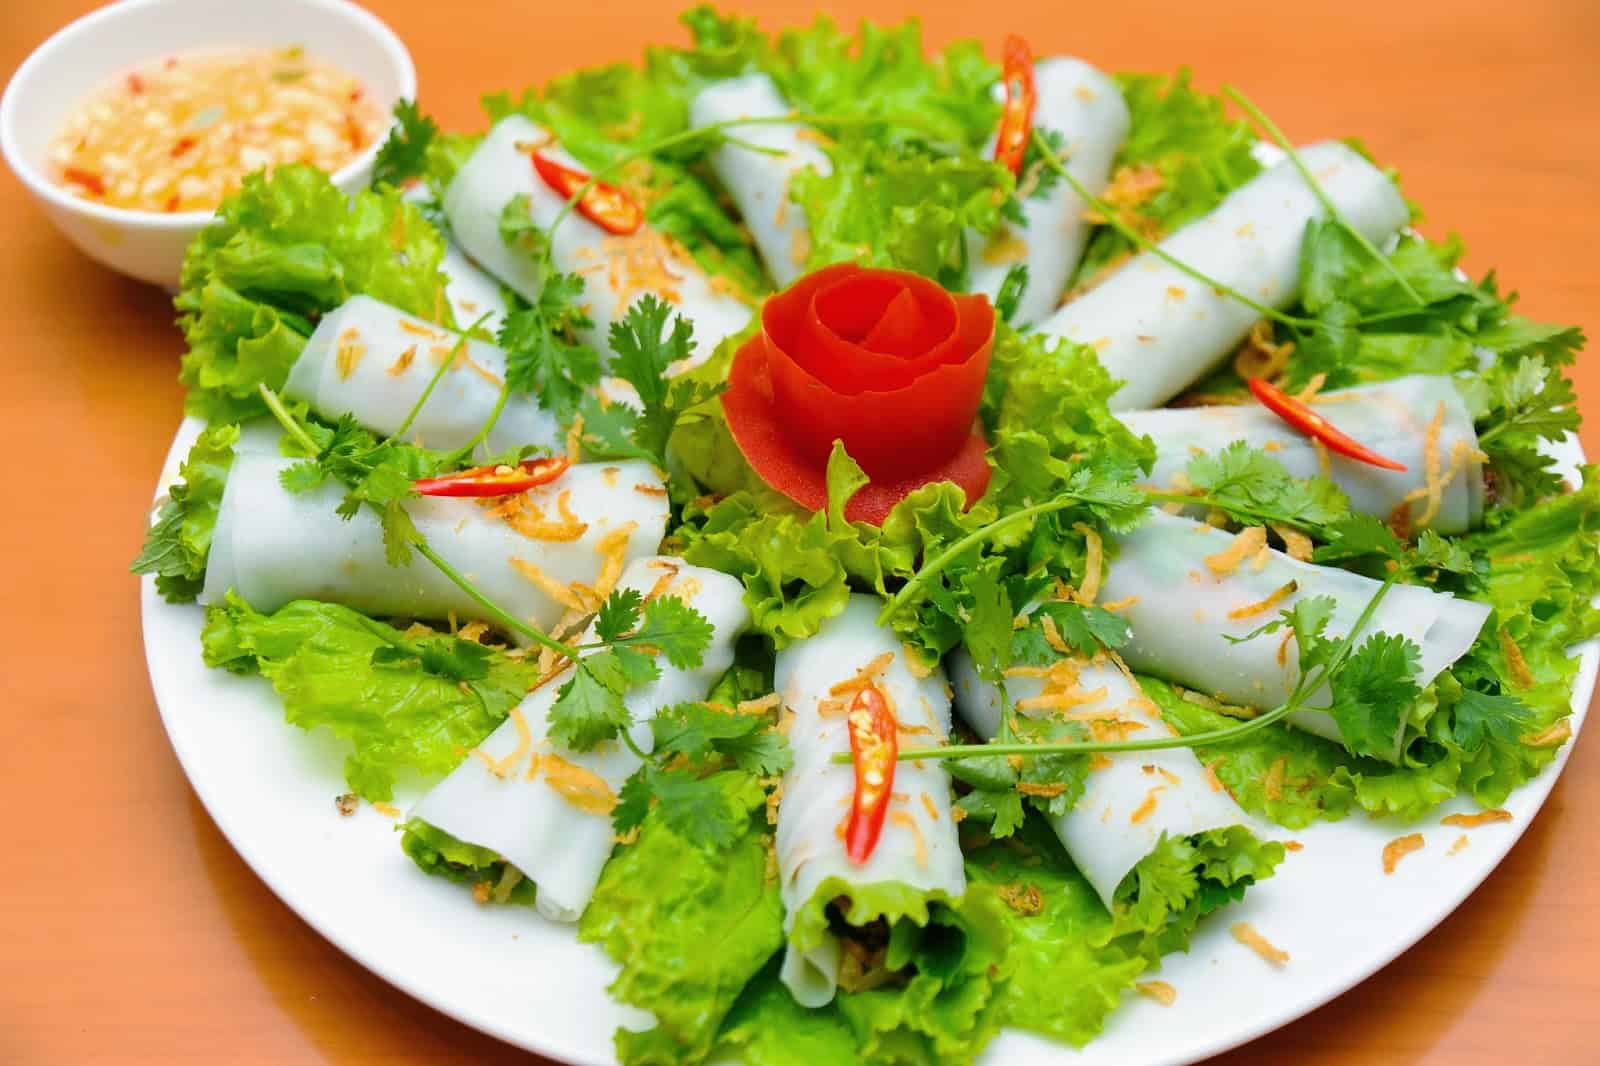 Pho Cuon - Rolled Noodle